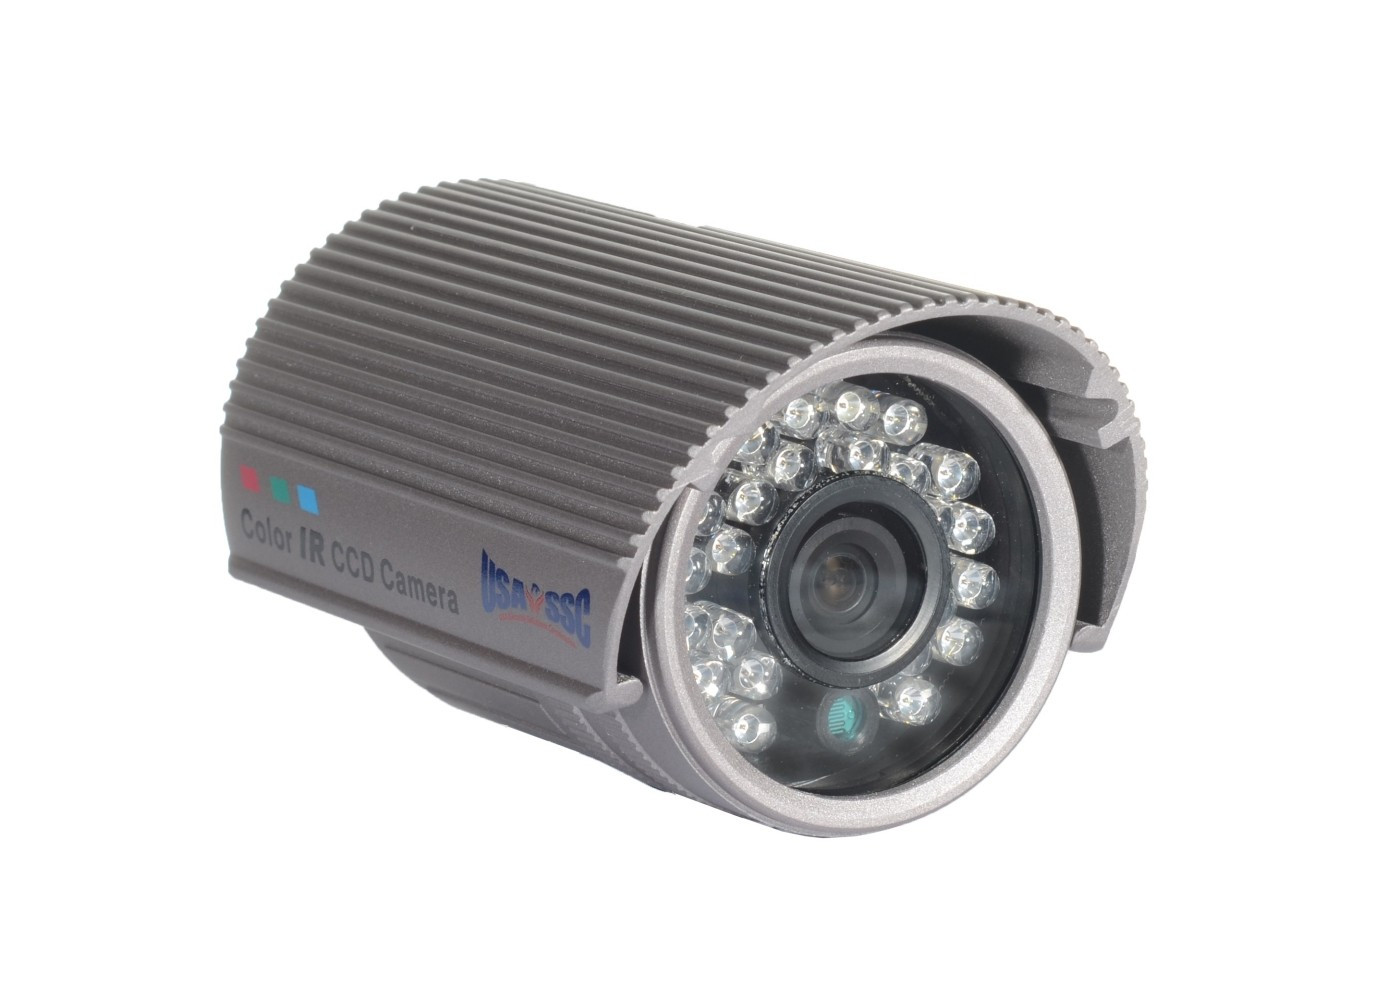 Indoor/Outdoor Bullet Camera, IR LEDs +/- 50', Color, 420TVL, 12VDC, 3.6mm, IP66, NTSC, Grey Housing